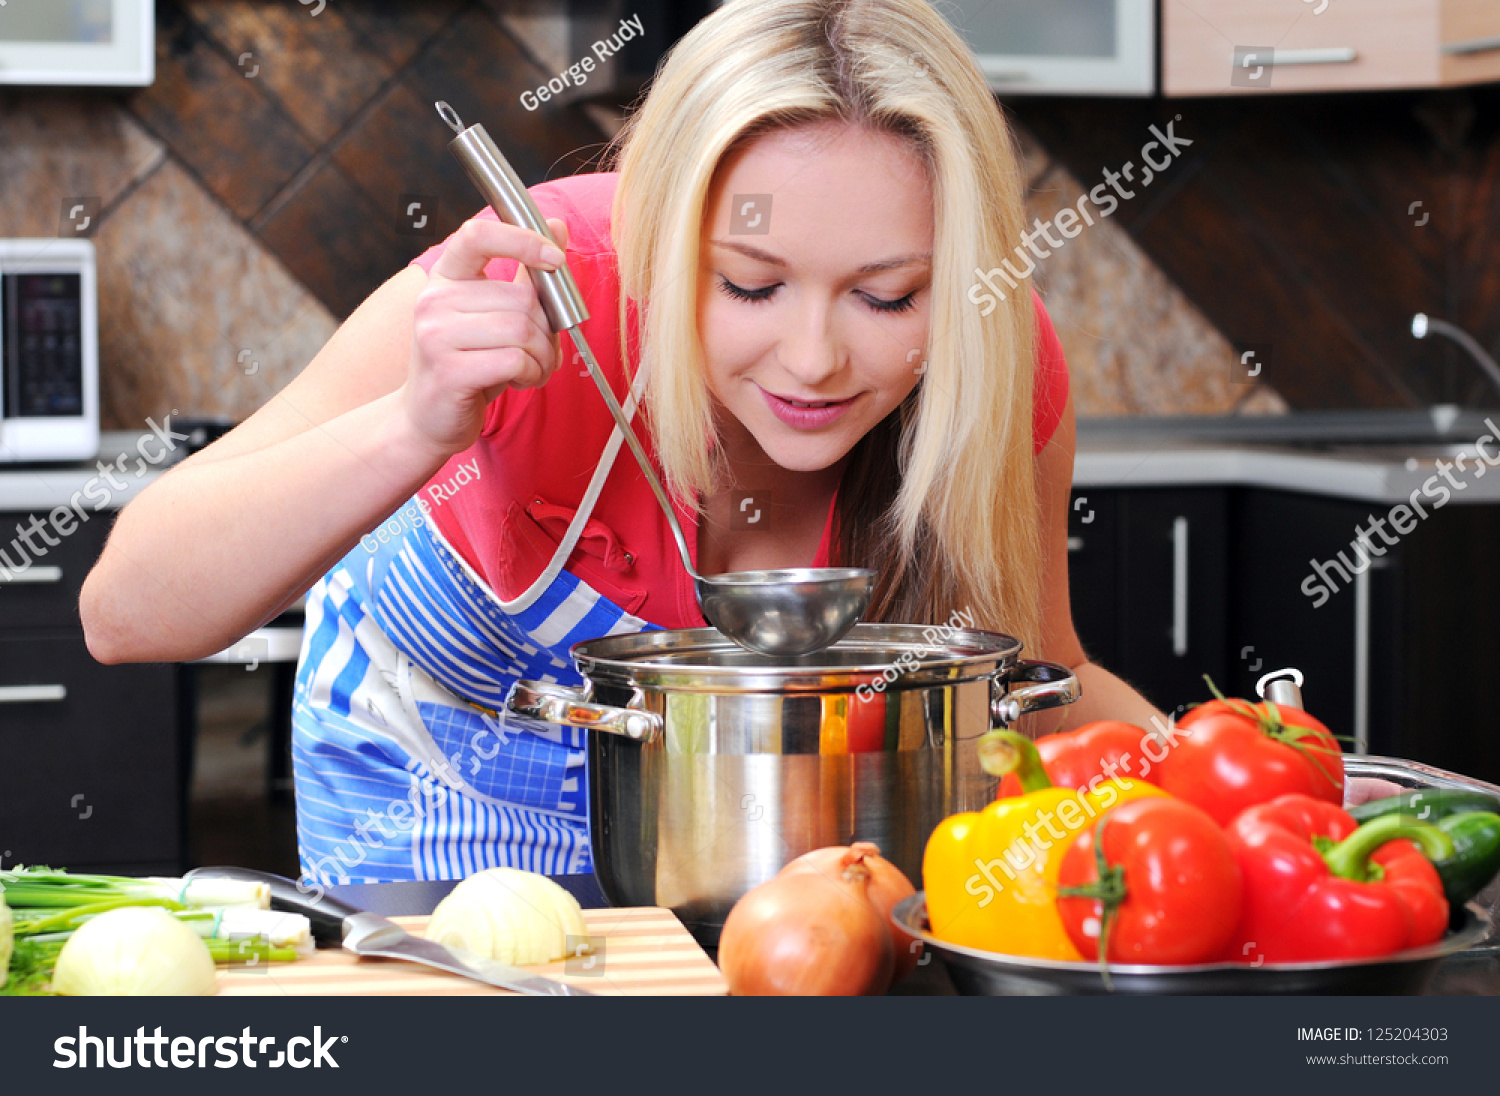 Kitchen Woman Making Healthy Food Standing Stock Photo